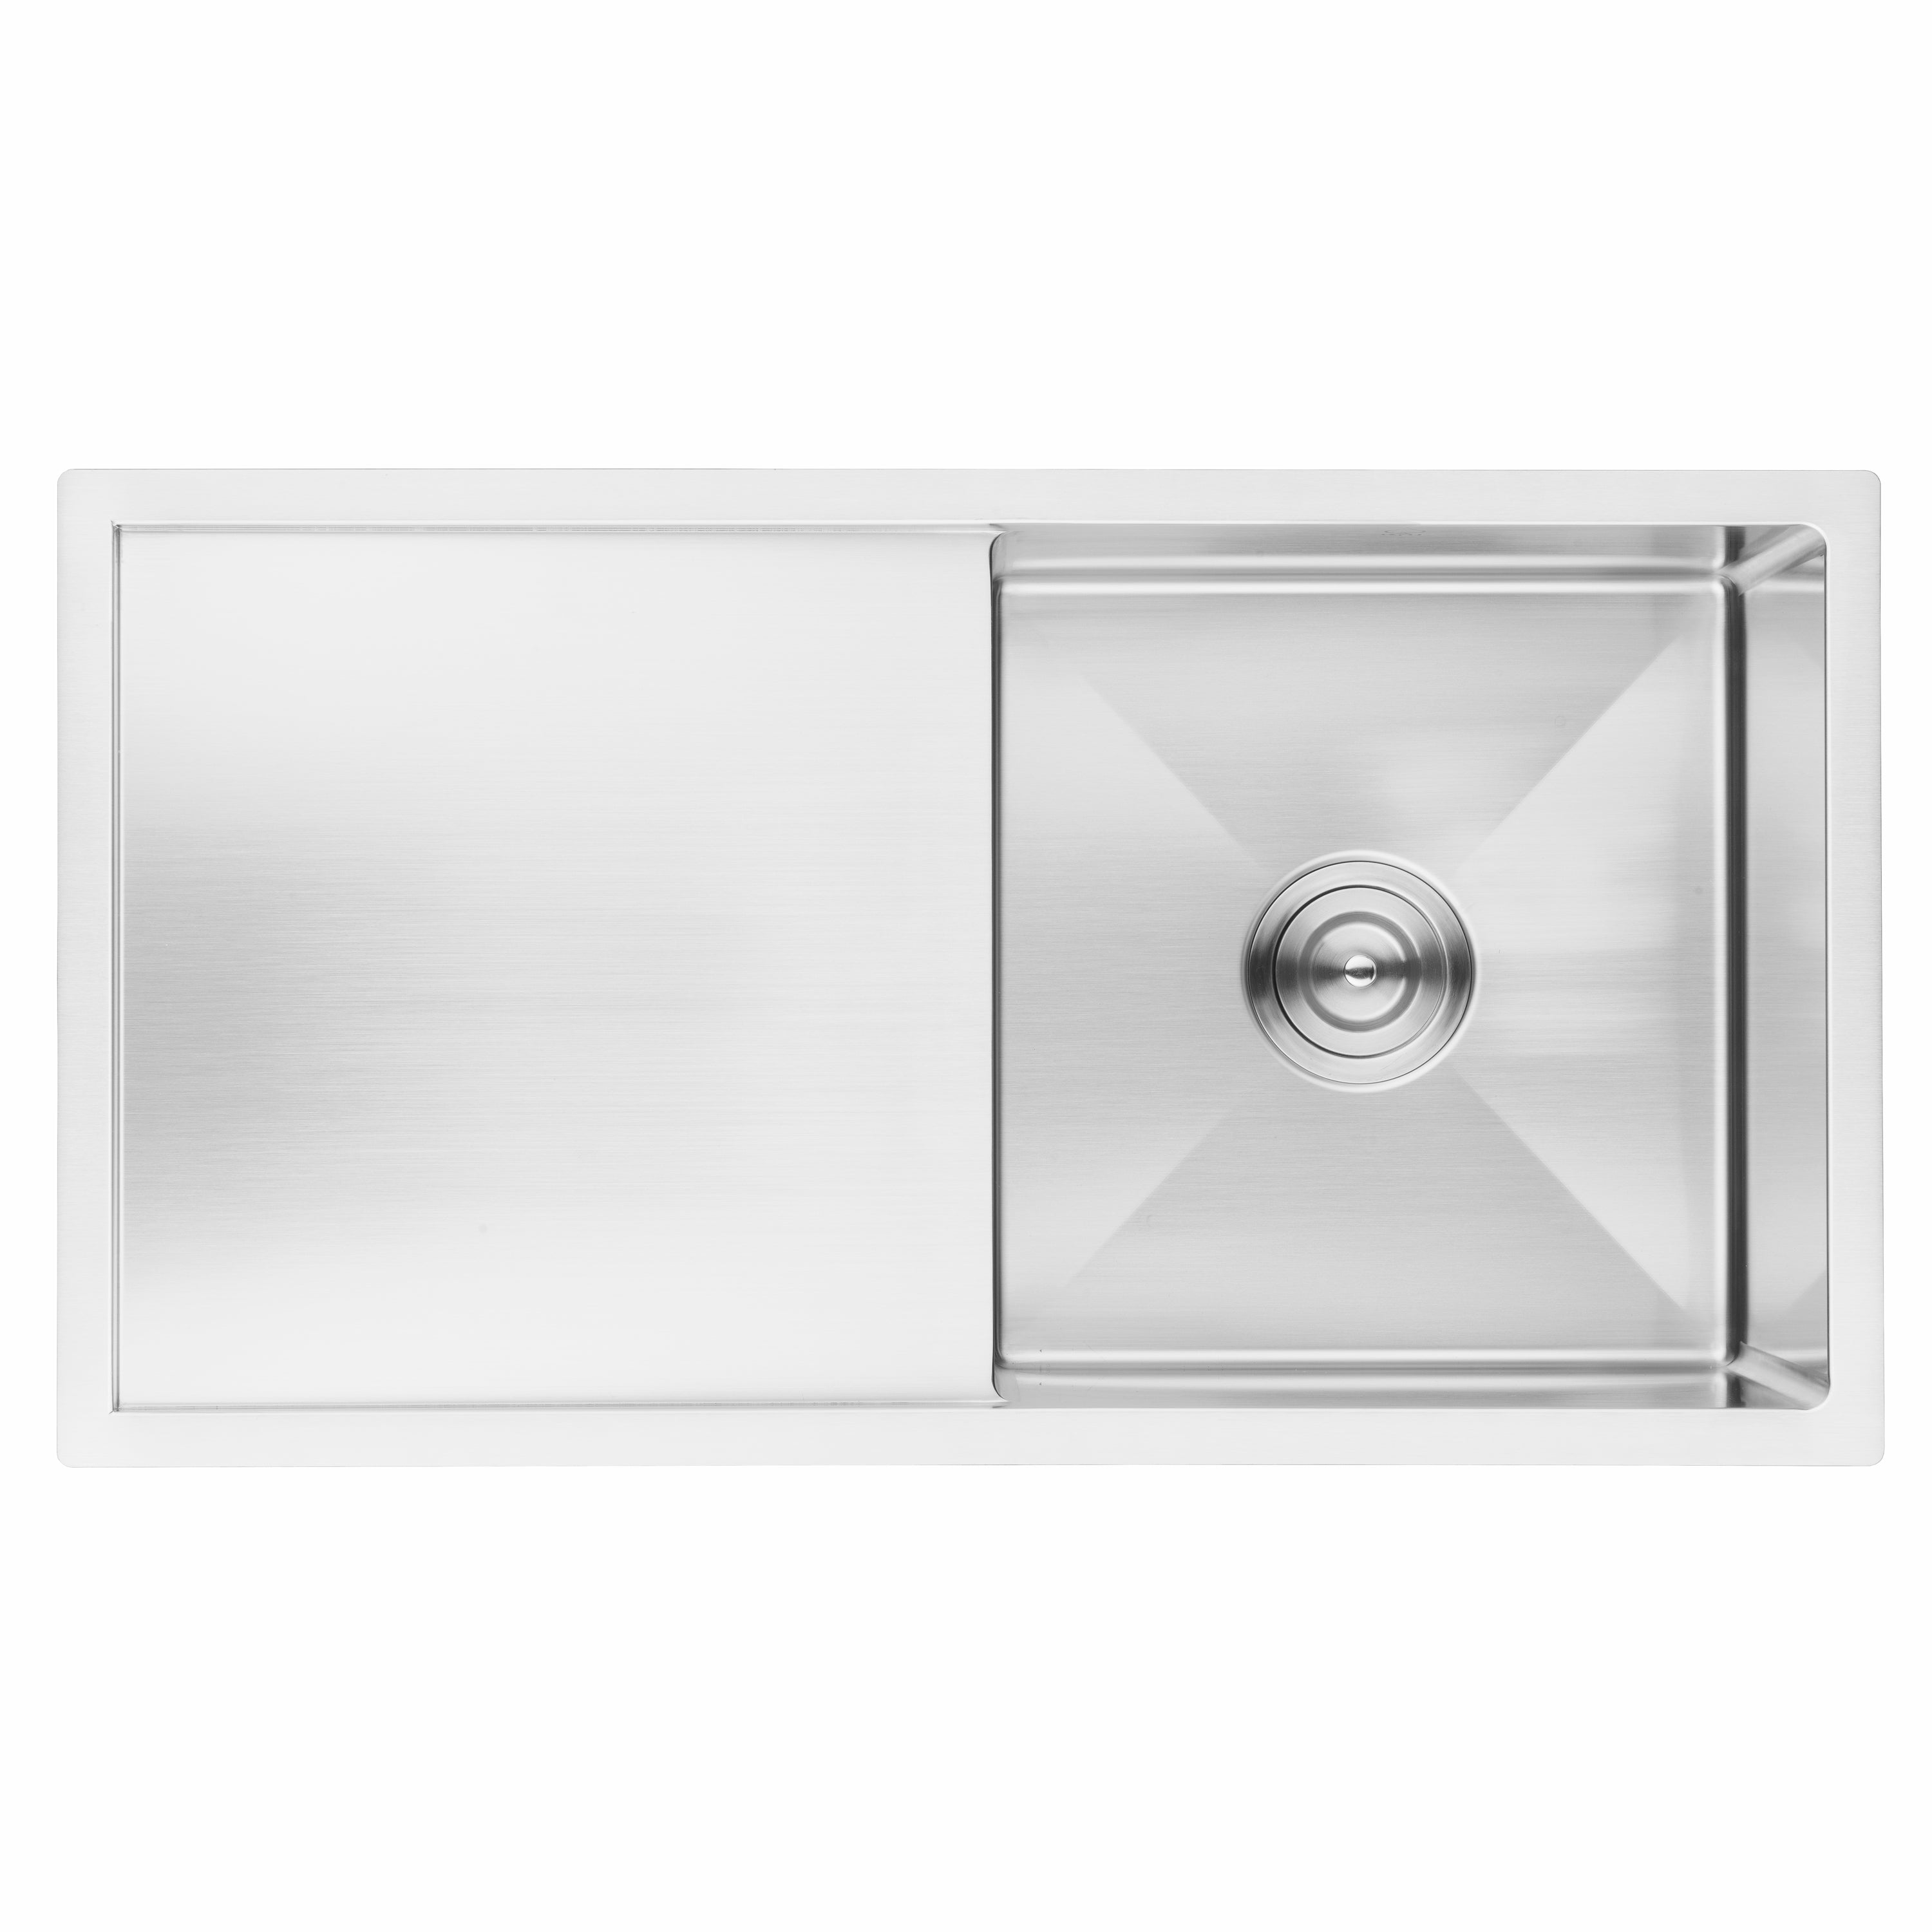 Bai 1230 Handmade 33 Inch Undermount Single Bowl With Drainboard 16 Gauge Stainless Steel Kitchen Sink Megabai